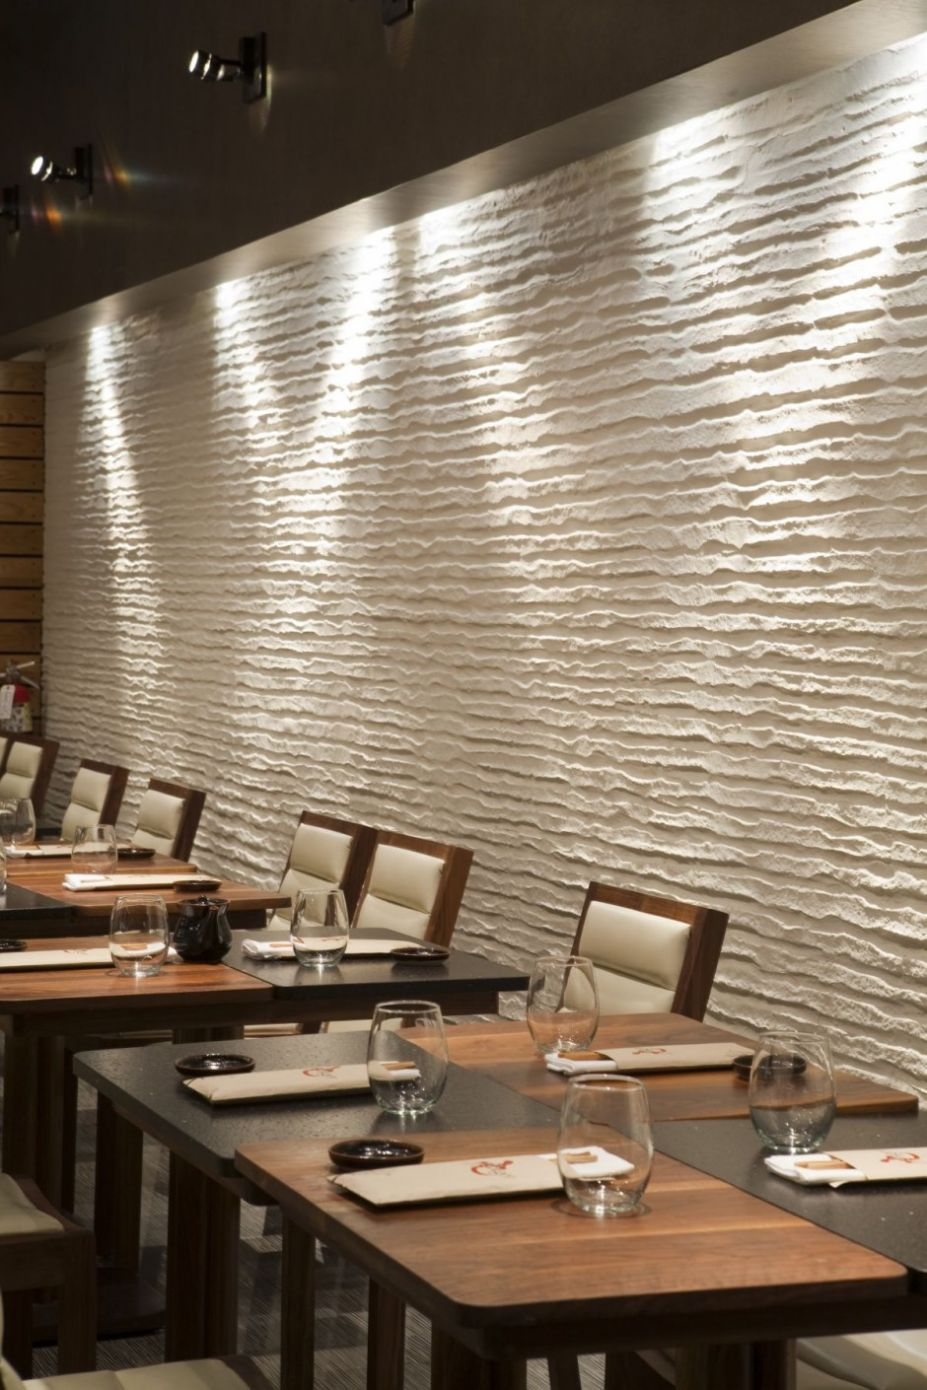 Merveilleux Room · Restaurant With Unique White Embossed Wall Treatment ...